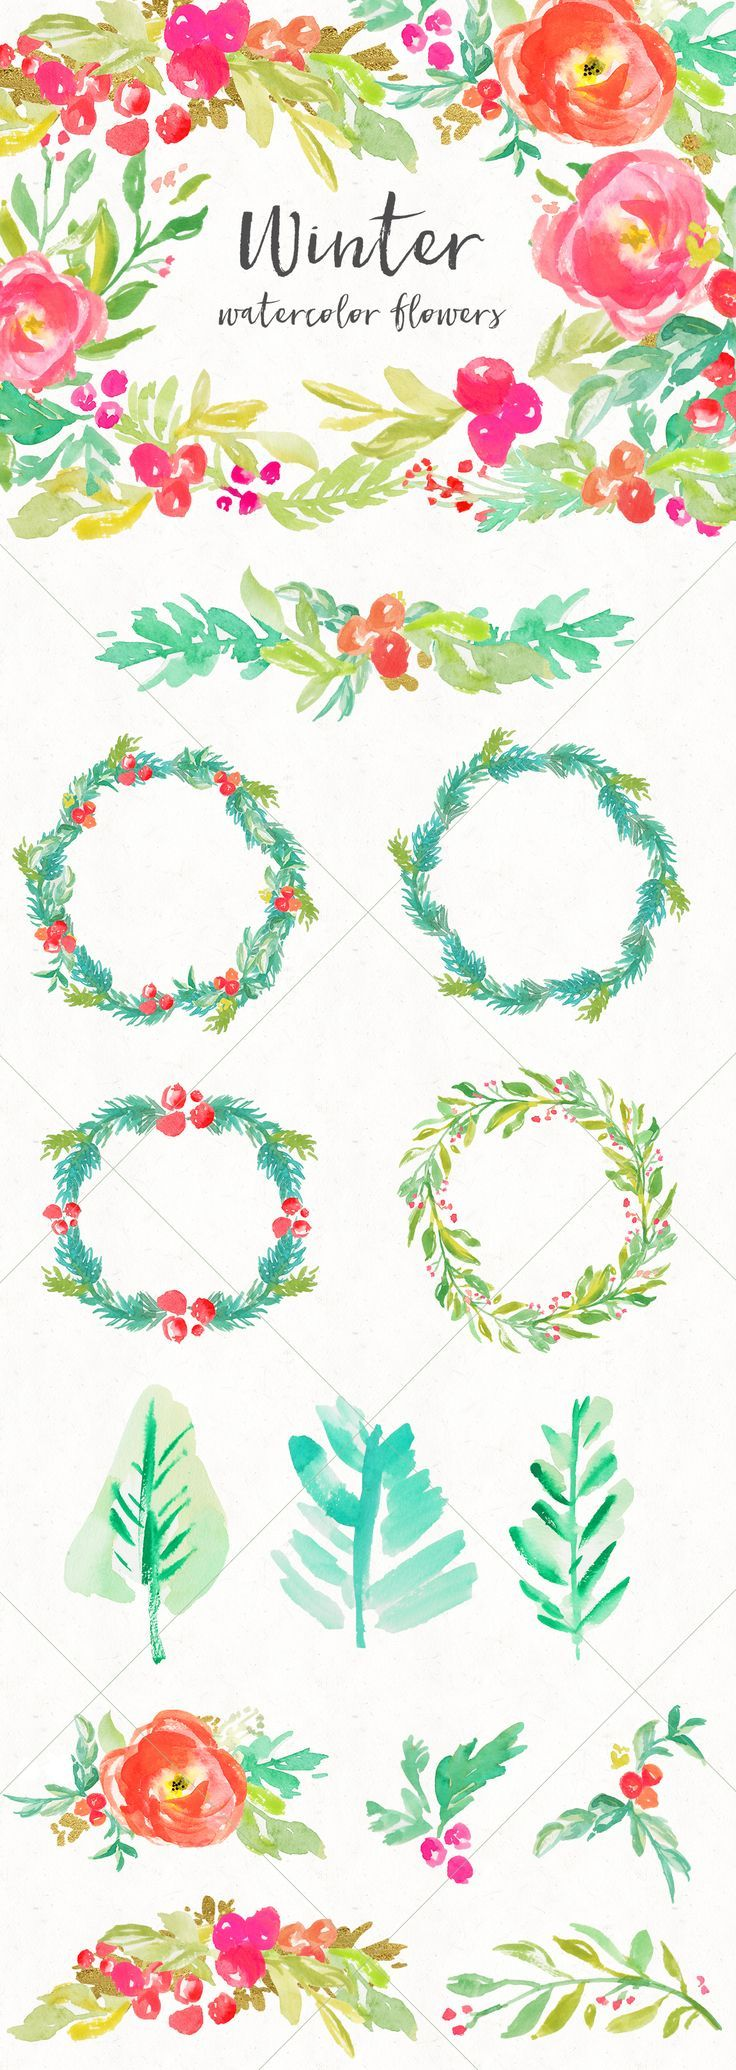 Watercolor Winter Flowers Clip Art Design Pack. Love these Hand Painted Floral Wreaths and Watercolor Clip Art Elements. Perfect For Christmas Cards, etc. | angiemakes.com